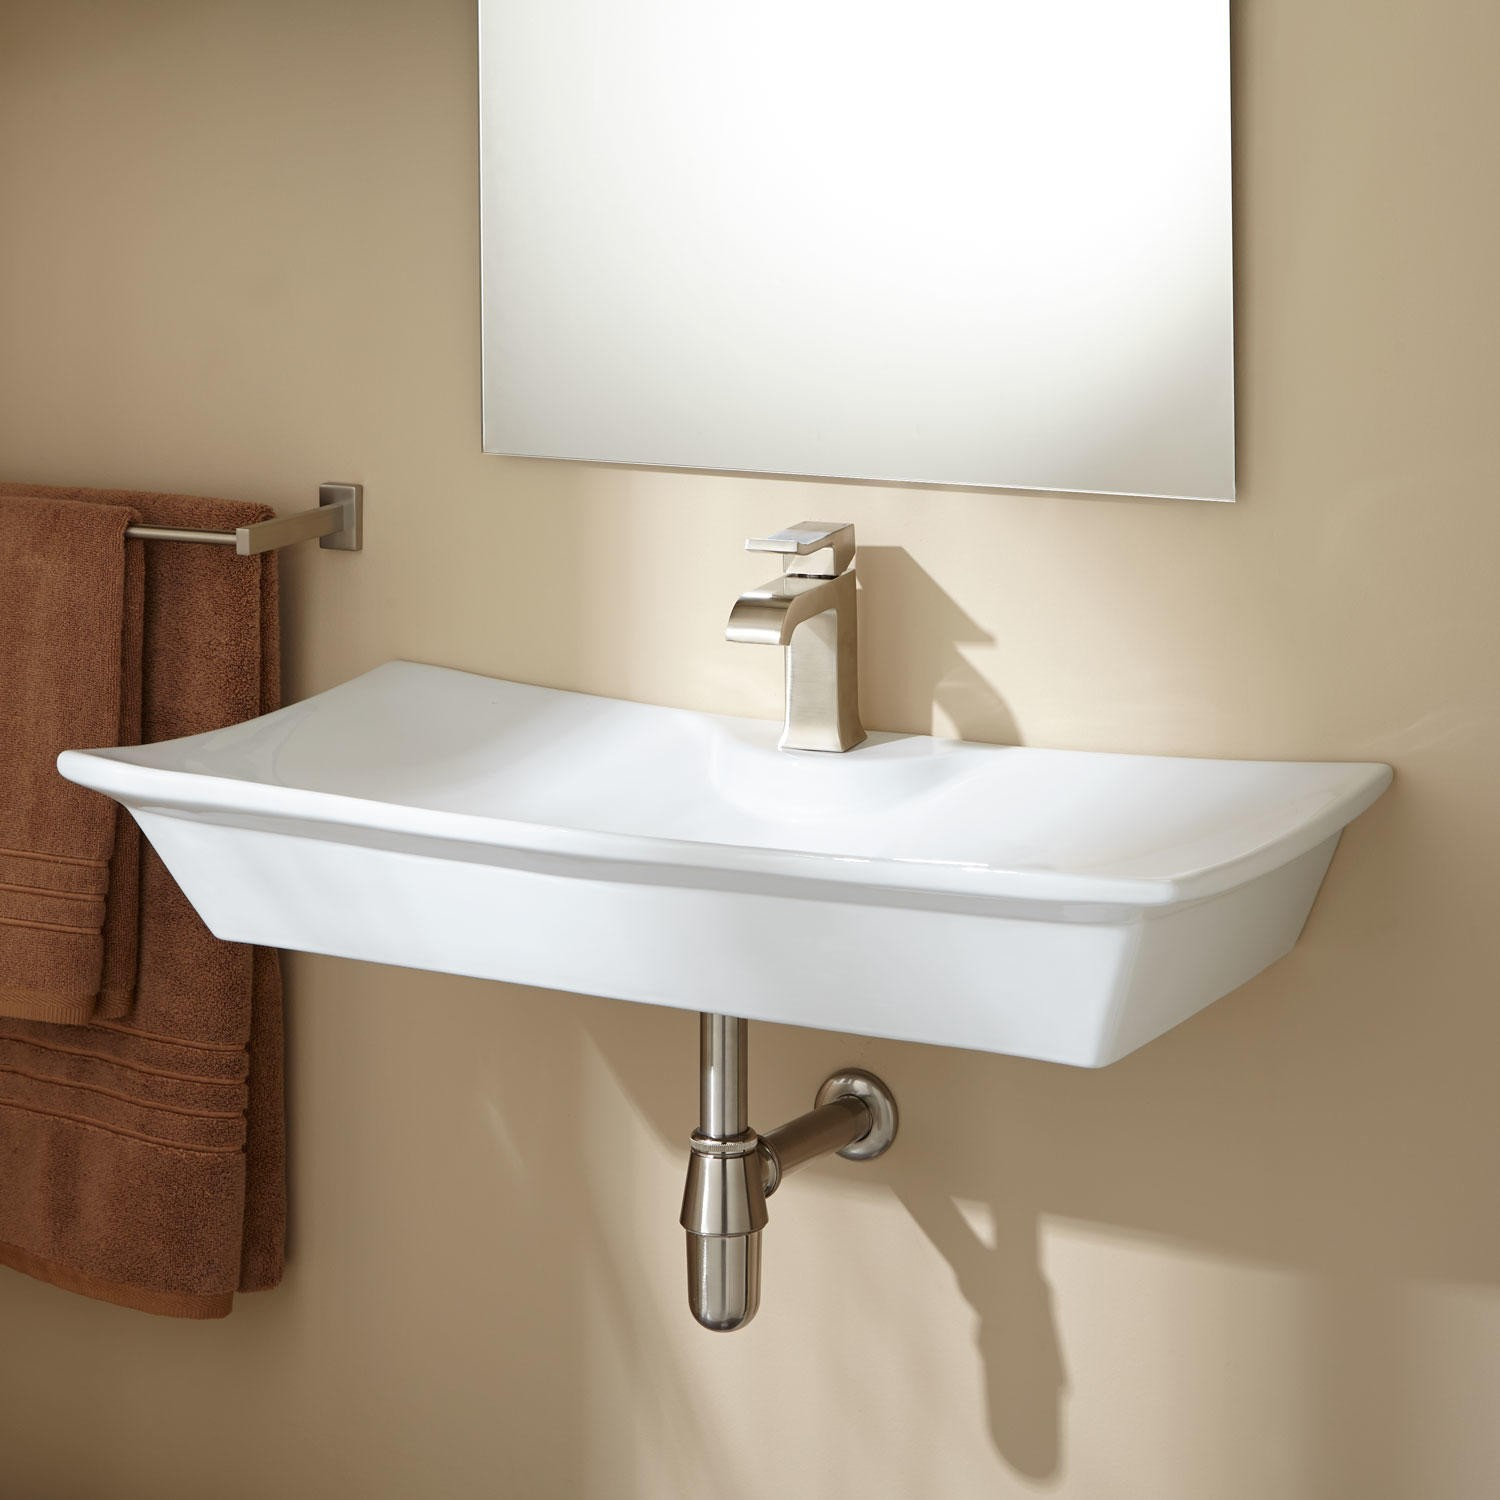 Attirant White Small Wall Mount Sink With Mirror And Towel Holder